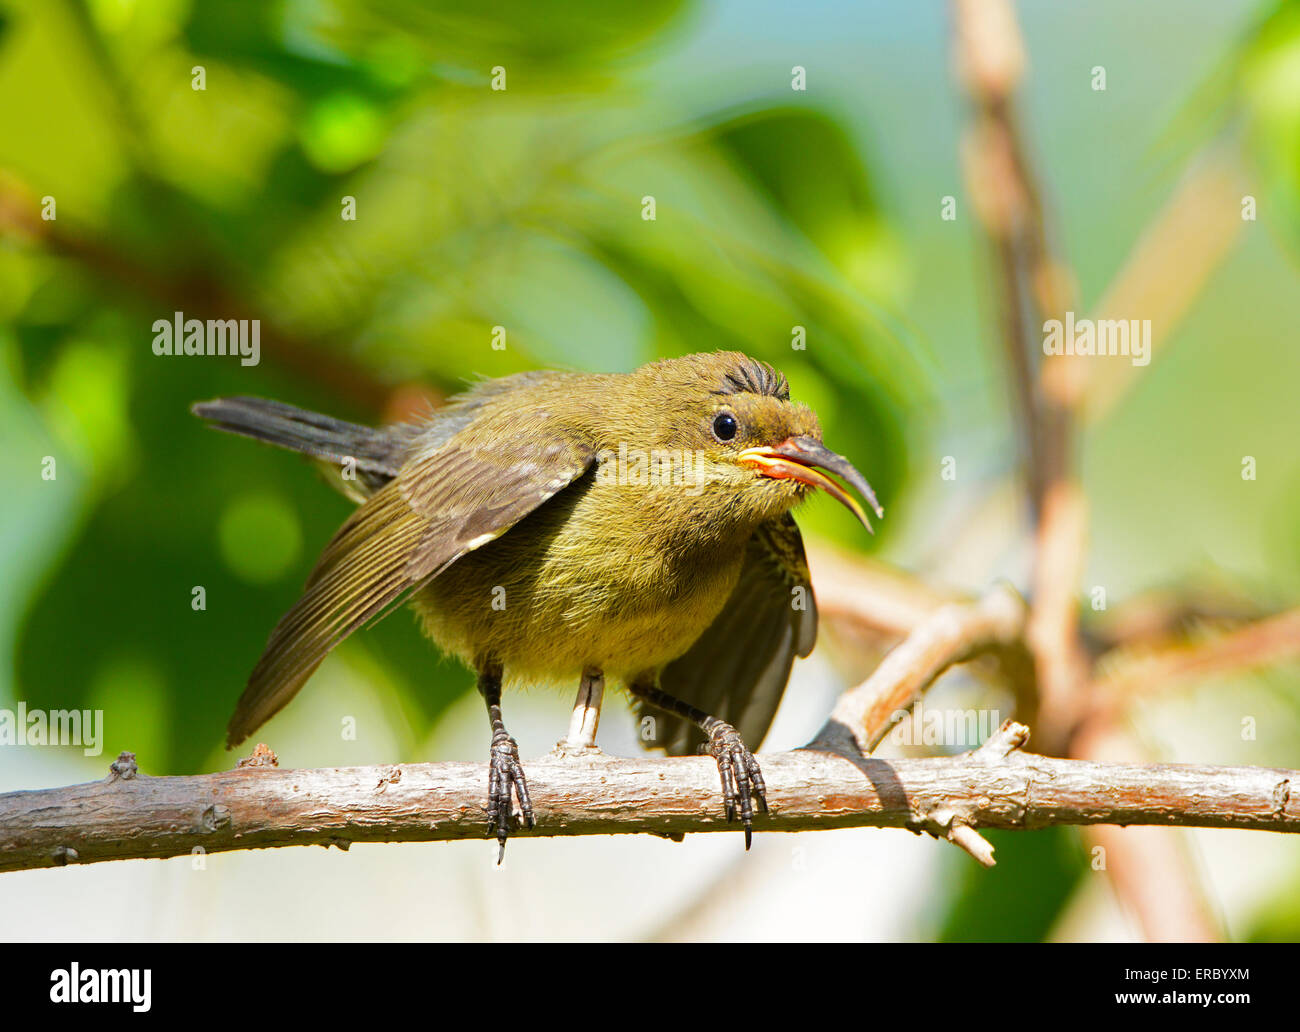 Chick begging for food - Stock Image